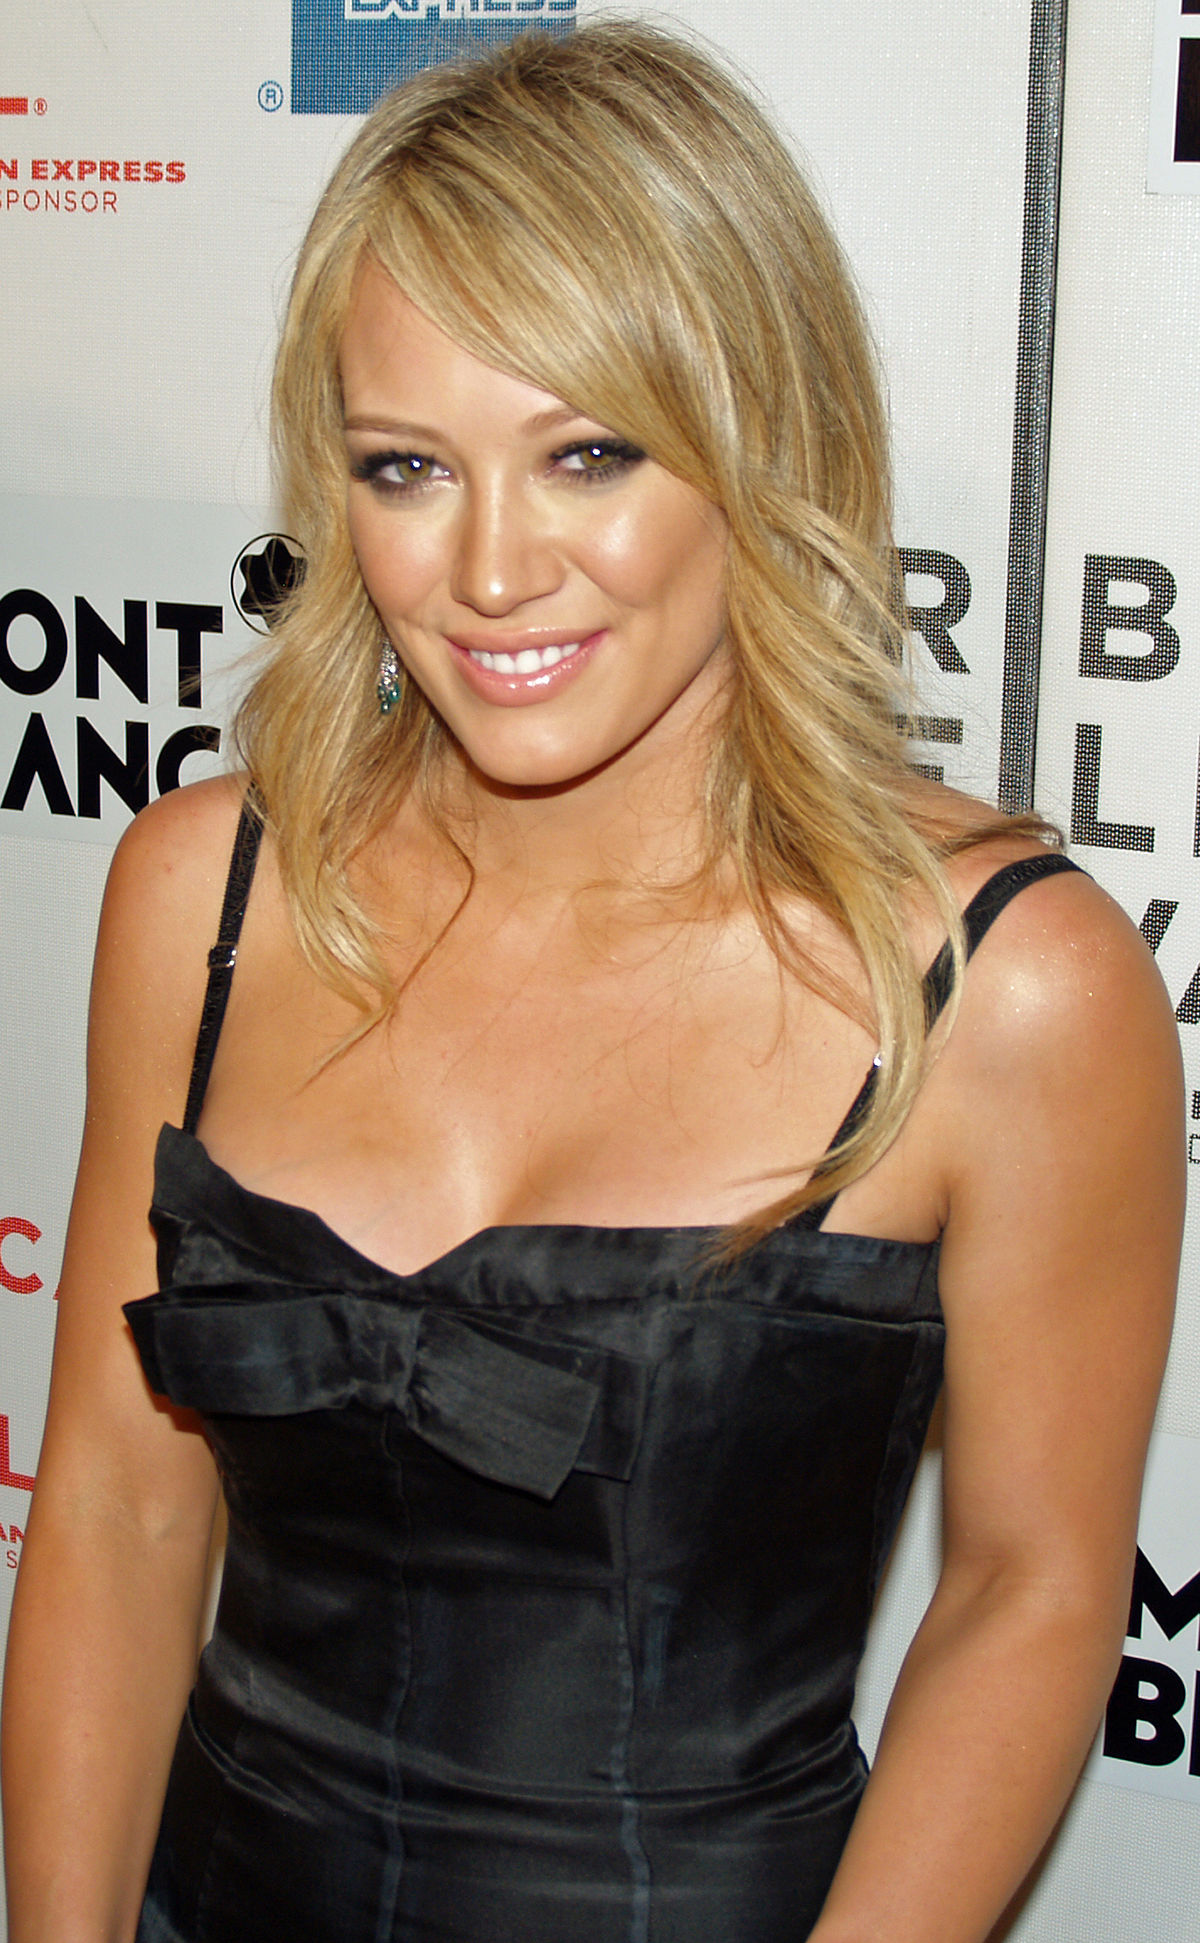 Hilary Duff - Wikipedi... Hilary Duff